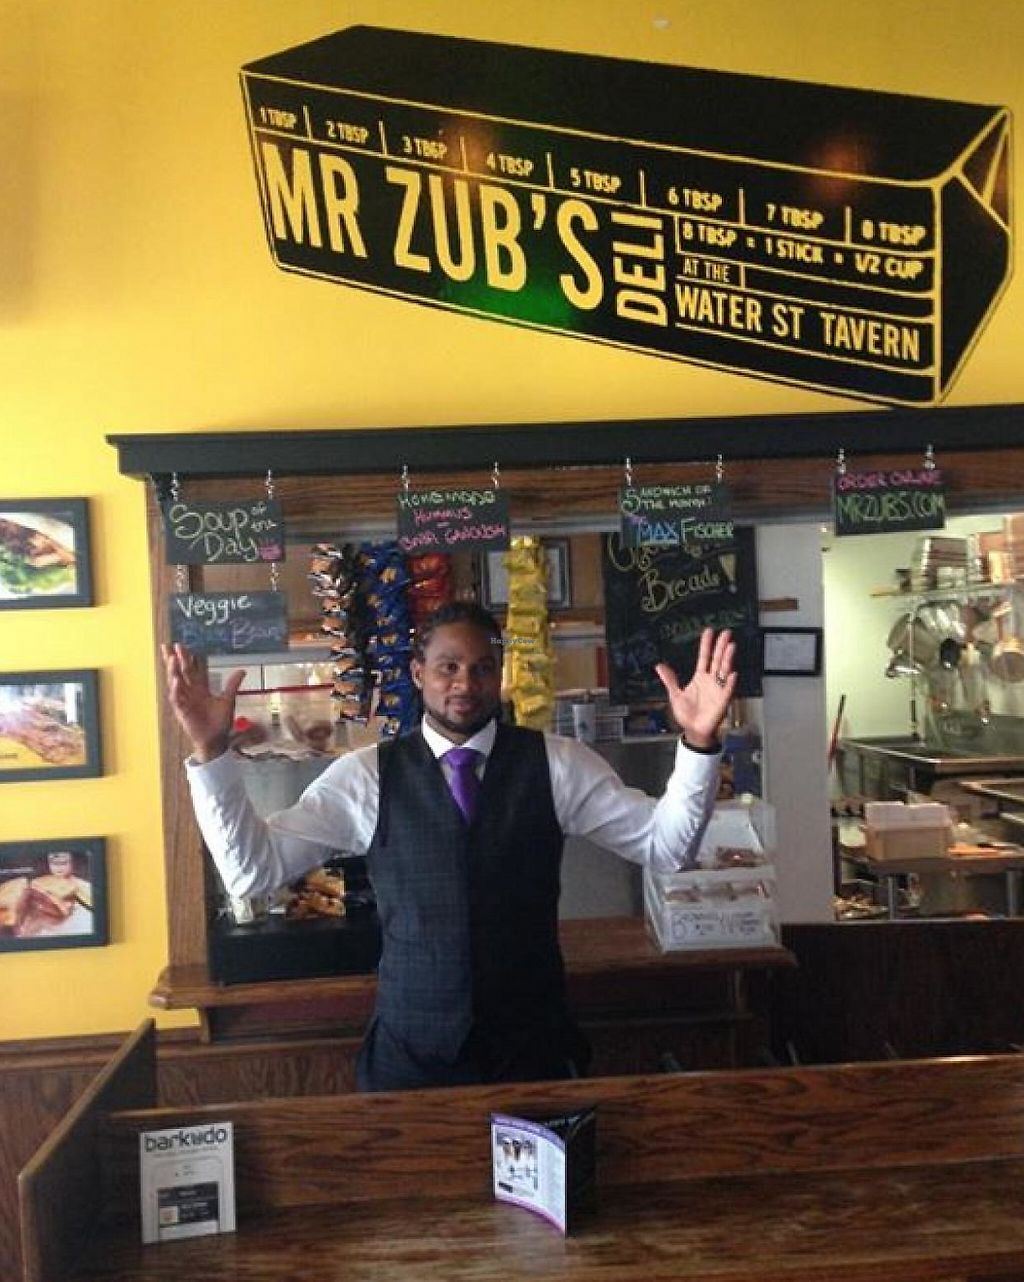 "Photo of Mr Zub's Deli  by <a href=""/members/profile/community"">community</a> <br/>Mr Zub's Deli  <br/> September 19, 2014  - <a href='/contact/abuse/image/51047/215394'>Report</a>"